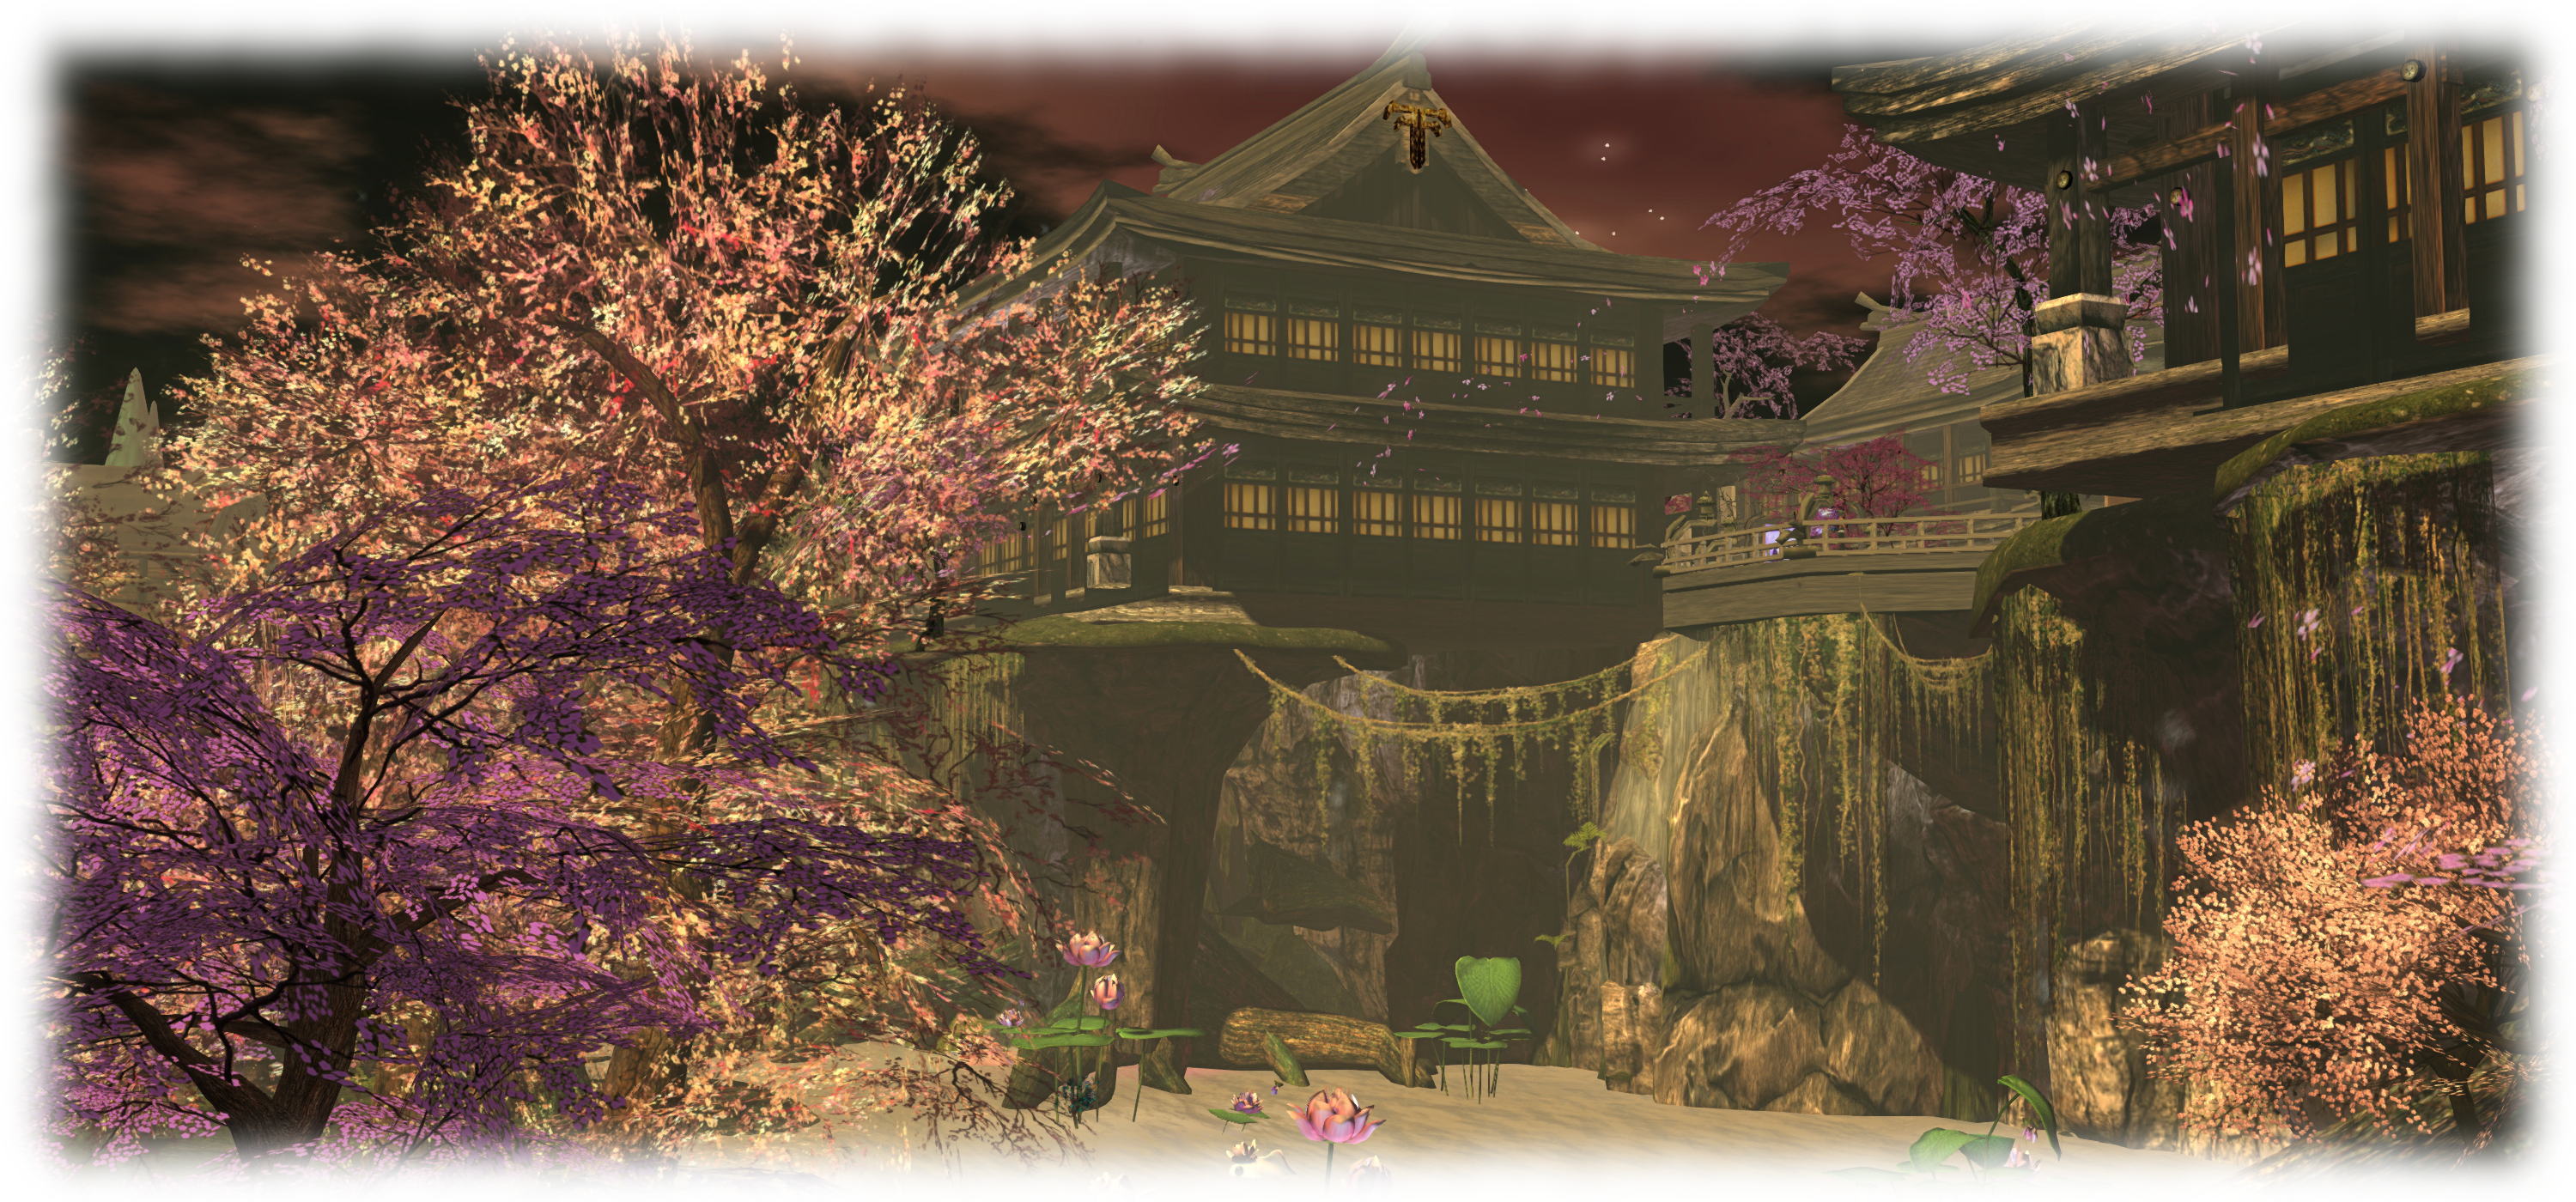 Fantasy Faire 2015: YoZakura; Inara Pey, April 2015, on Flickr